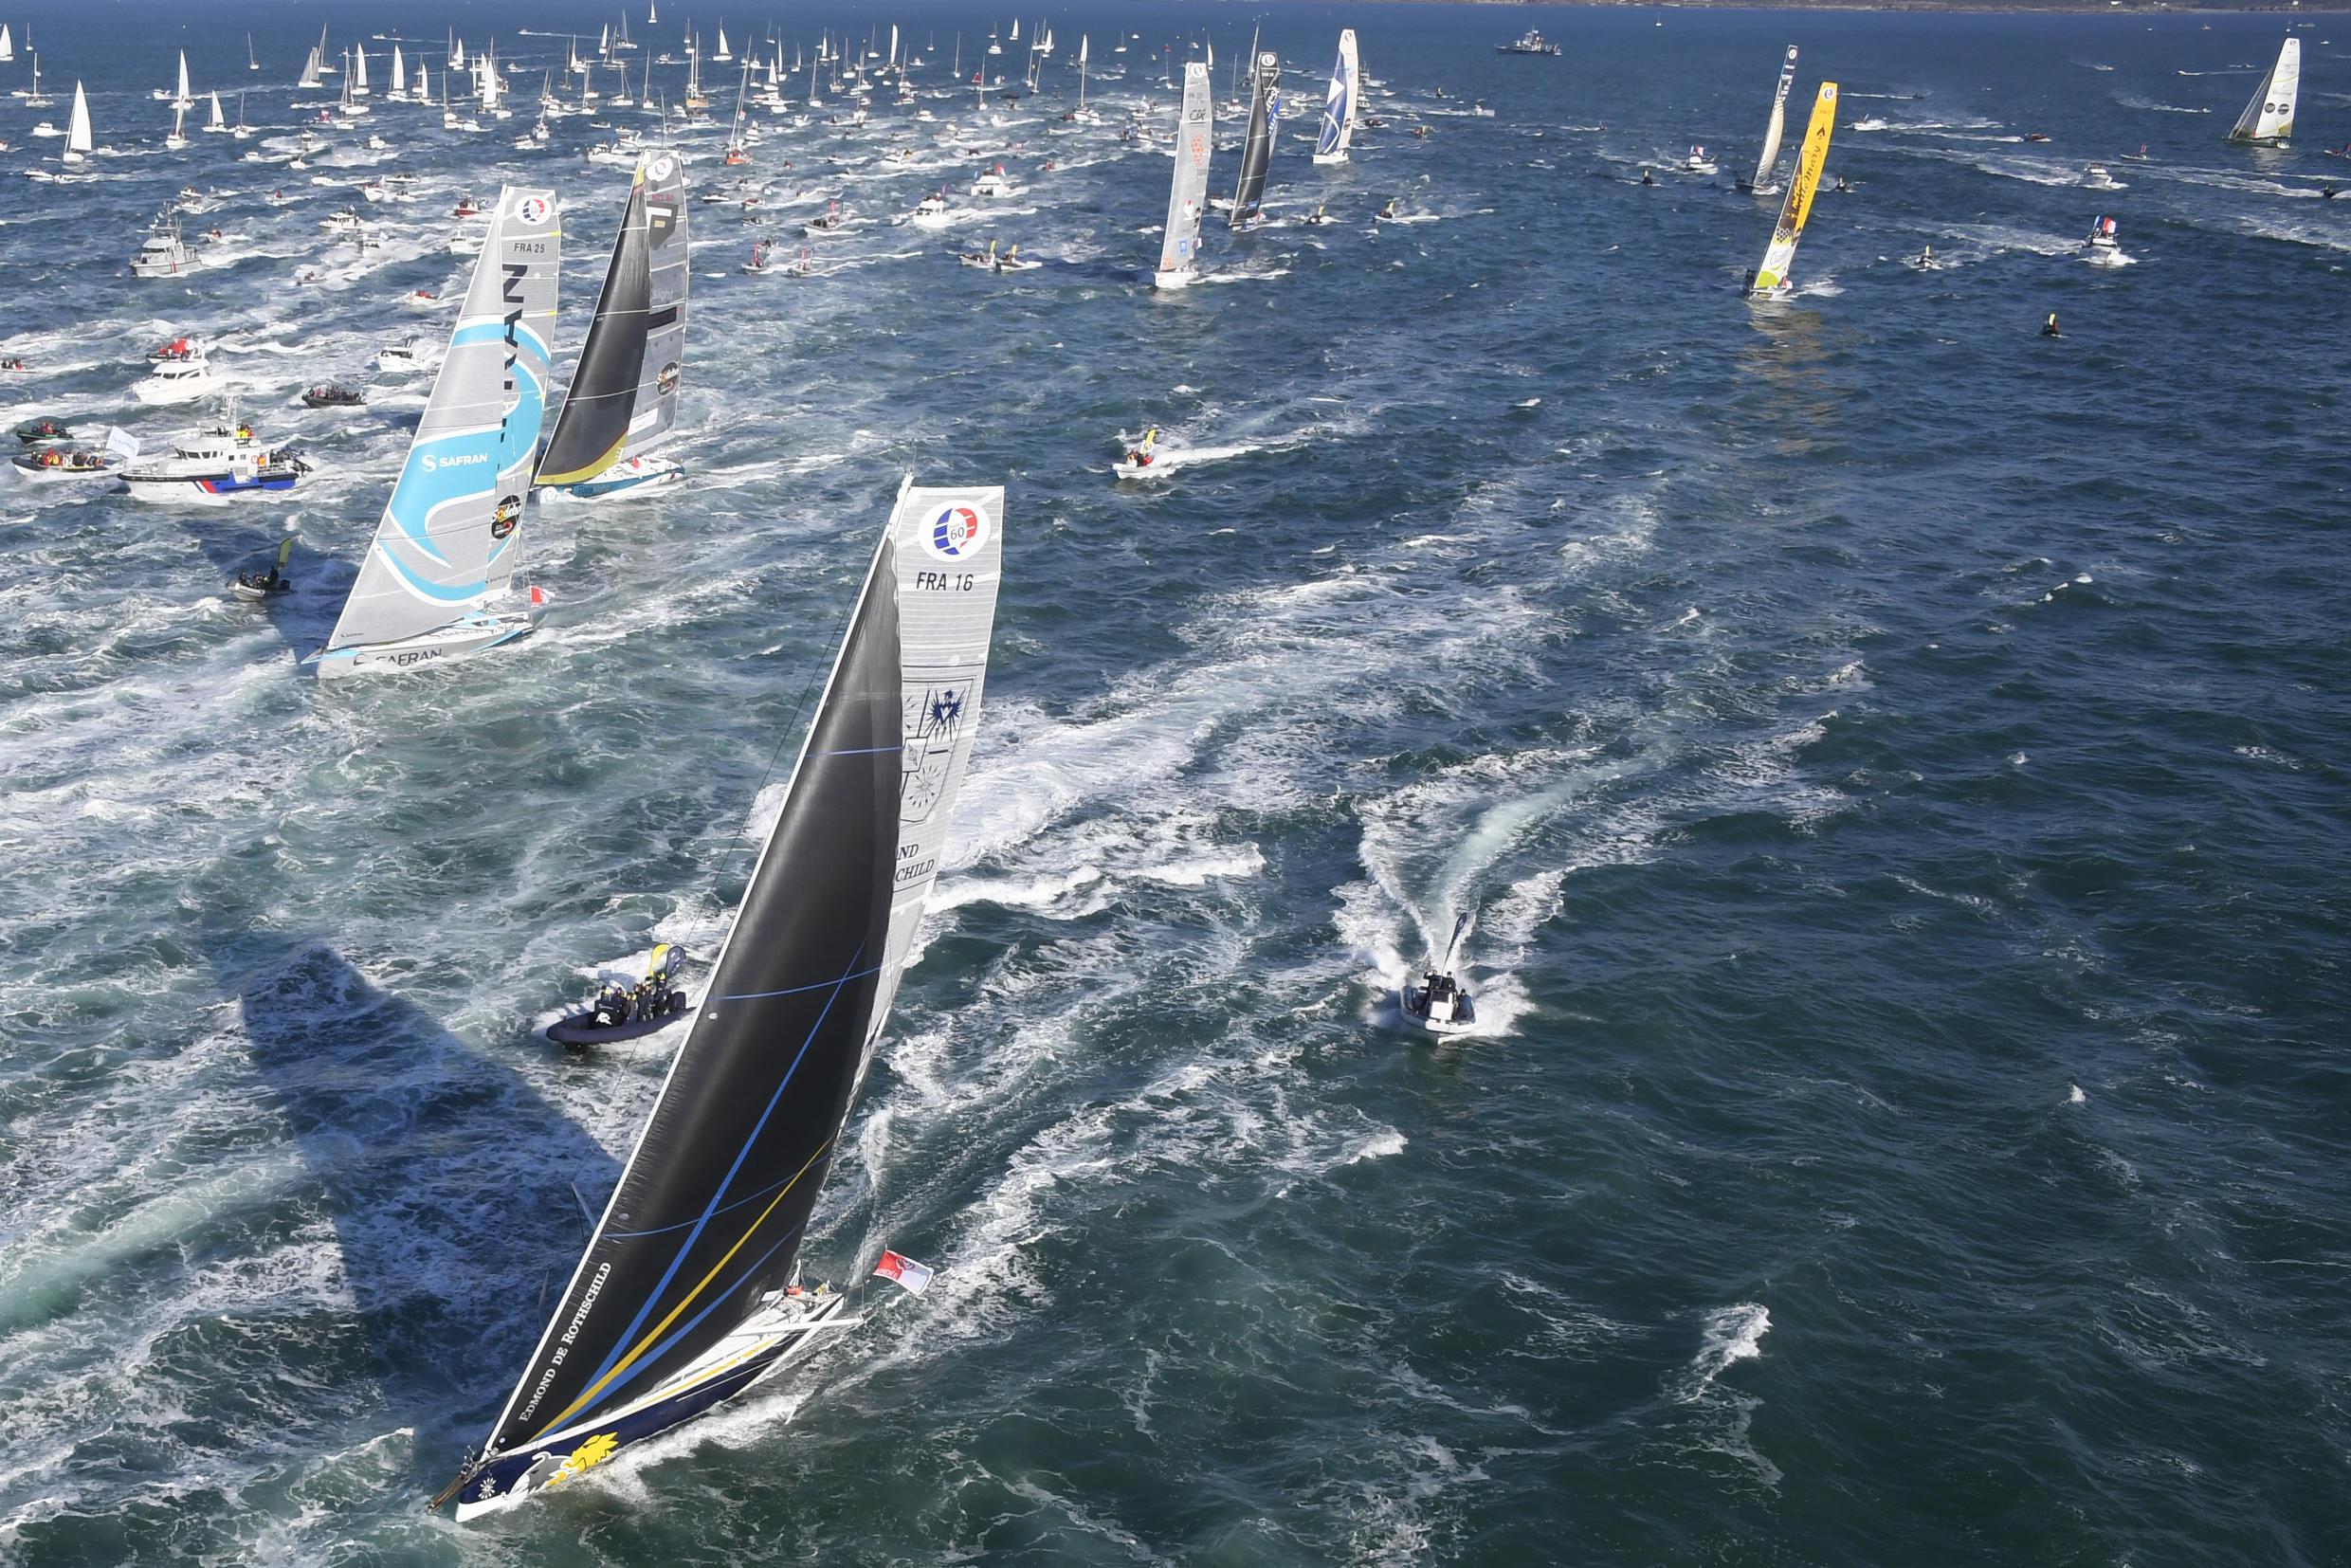 The Vendee Globe started as planned on November 8 but there were no supporters quayside at Sables-d'Olonne to see off the 33 yachts